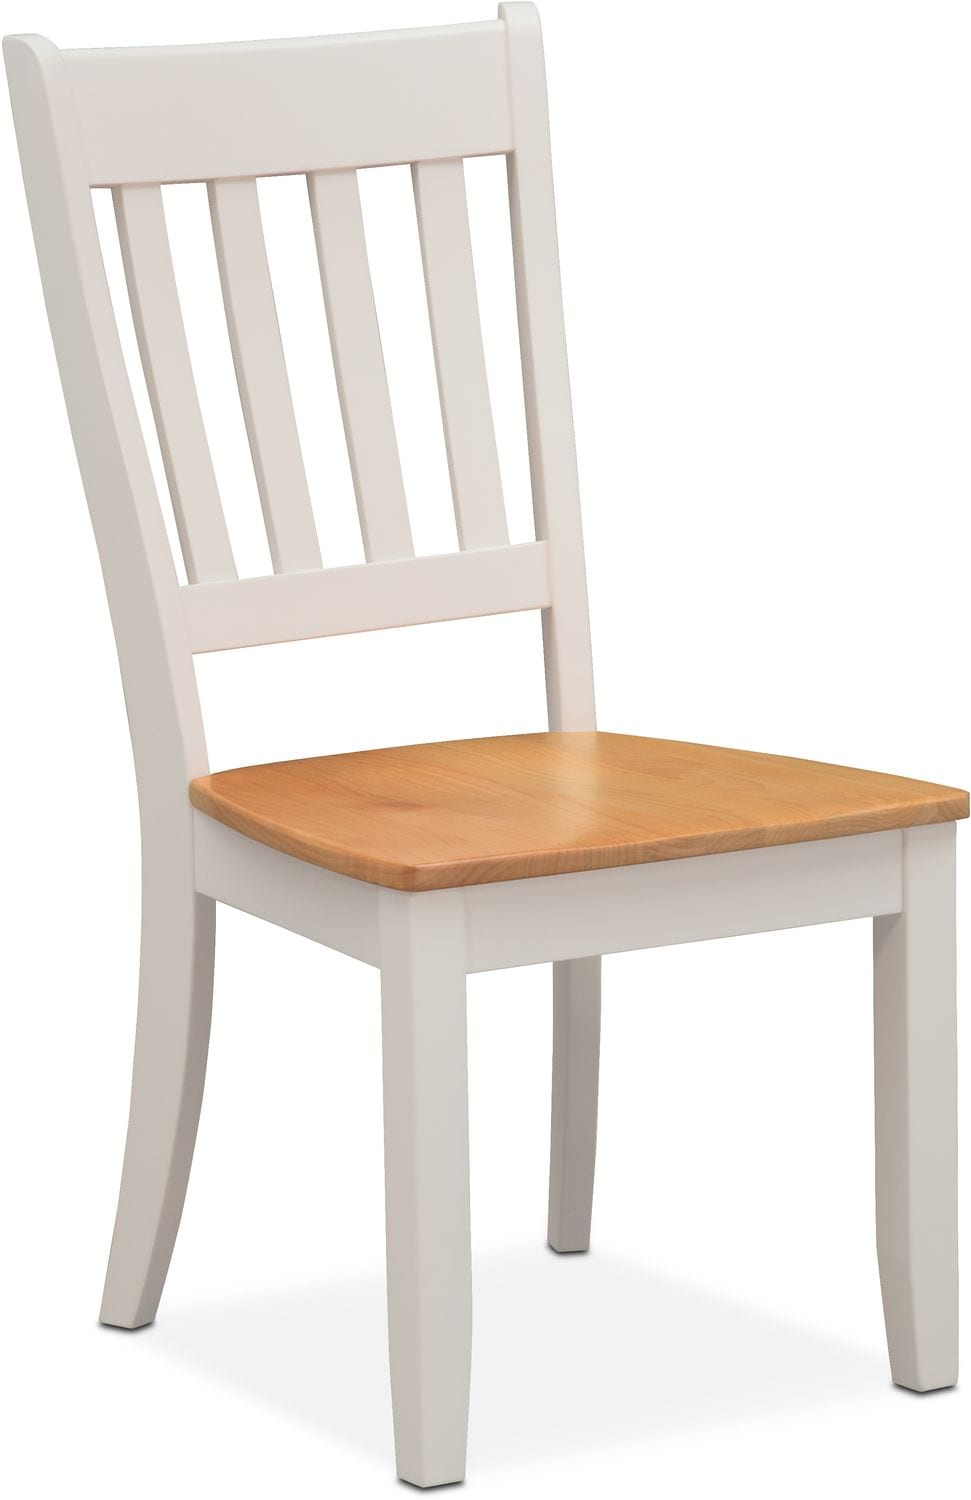 value city furniture accent chairs revolving chair in pakistan nantucket trestle table and 4 slat-back - maple white | ...